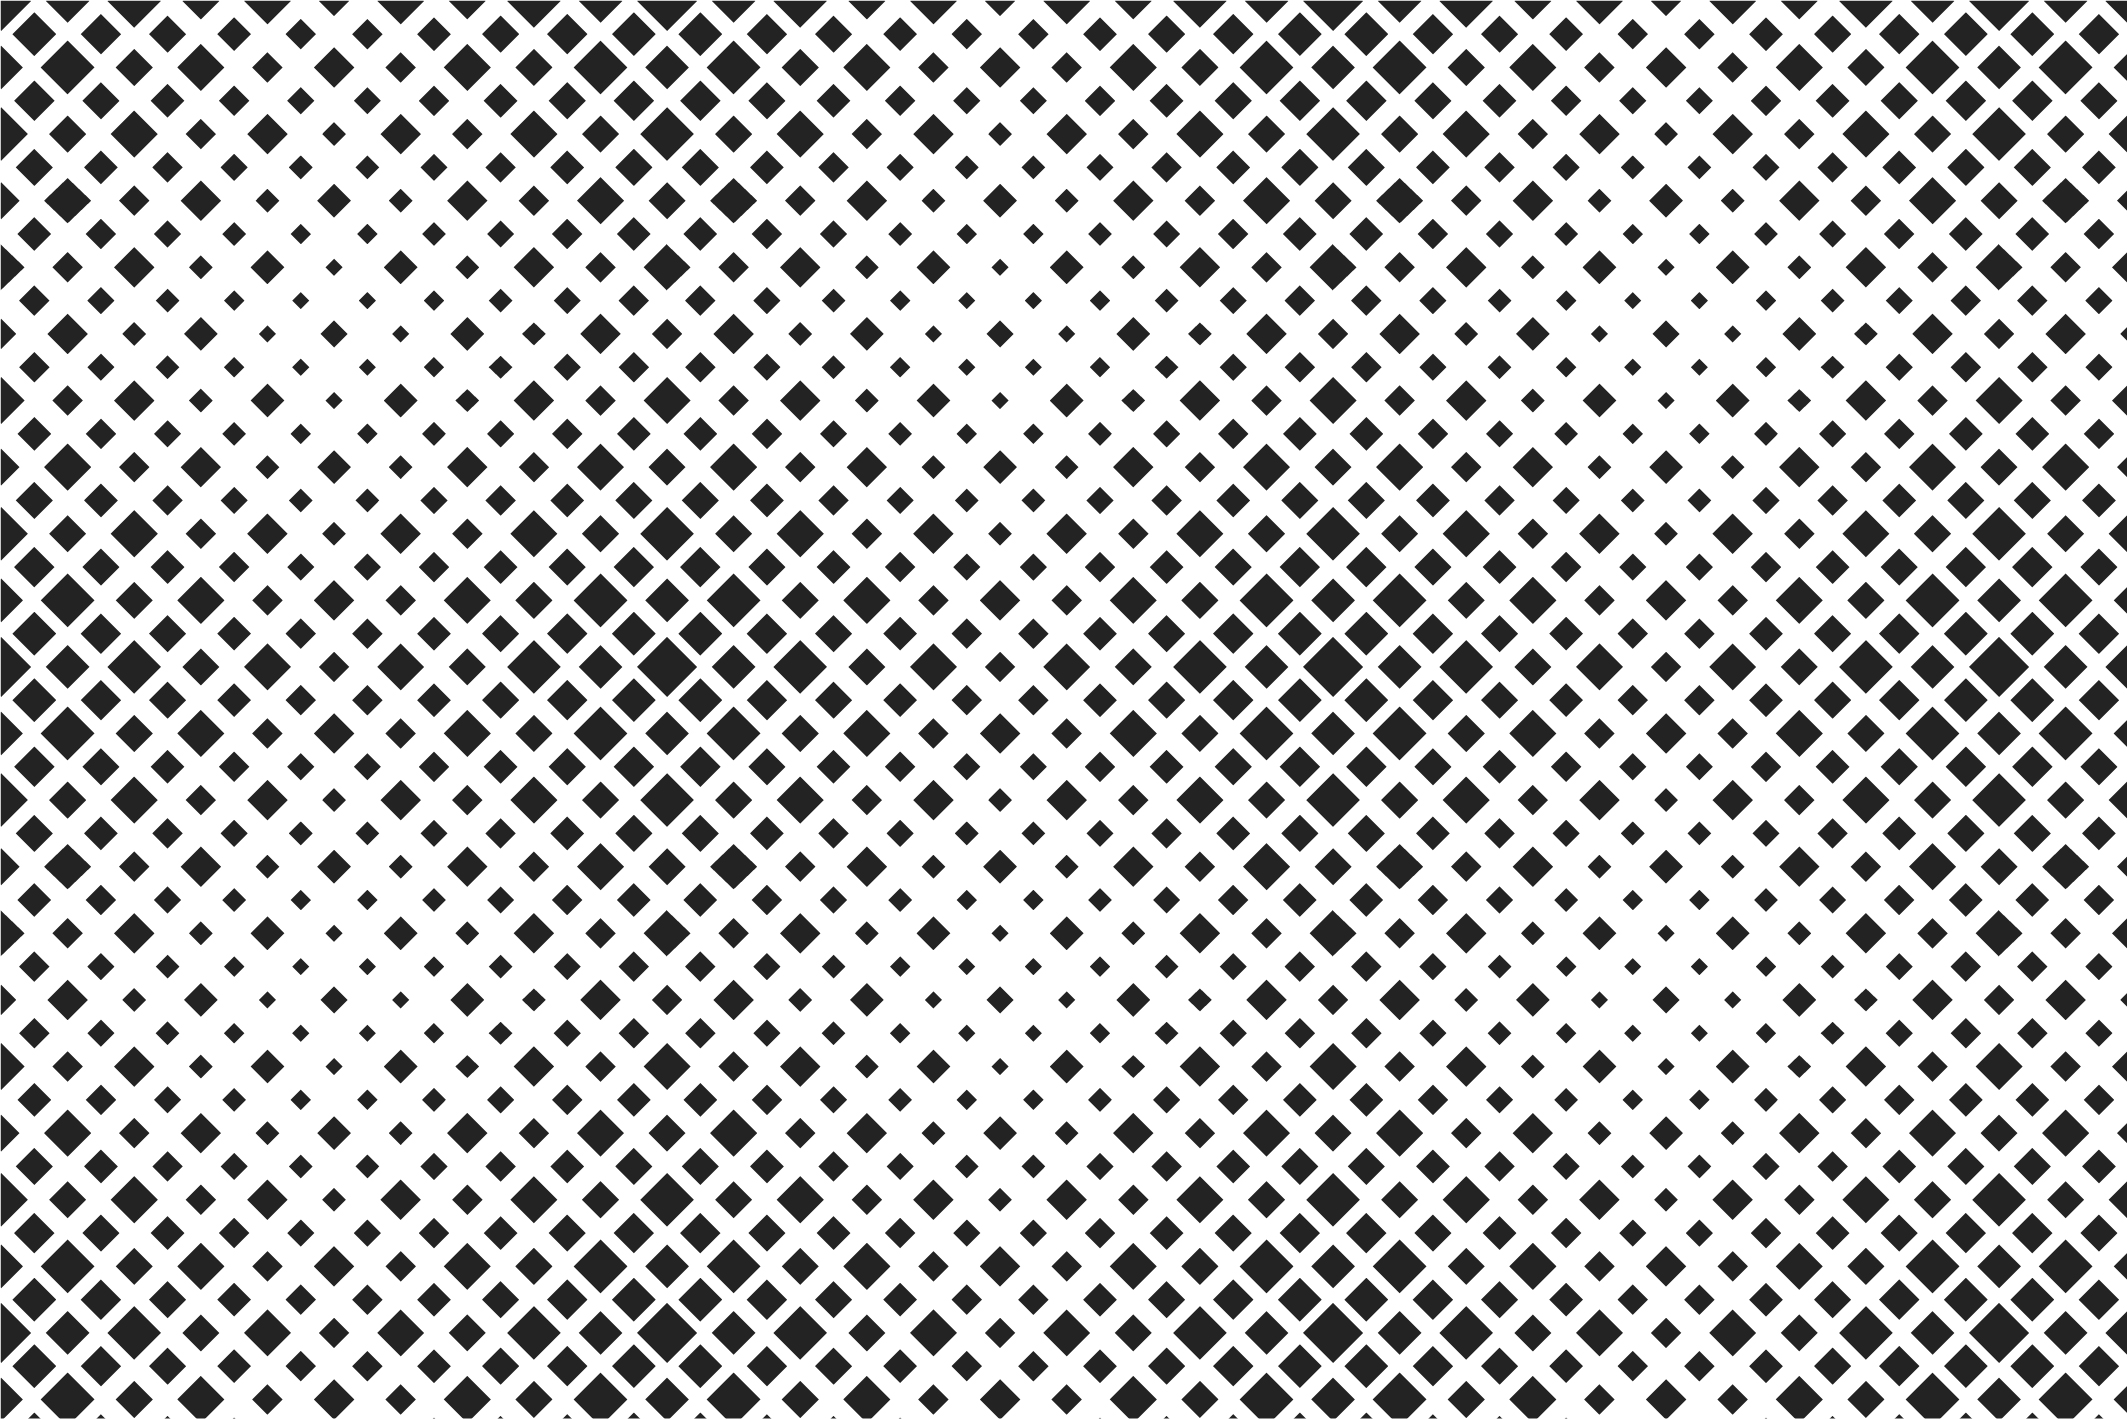 Halftone seamless patterns example image 8